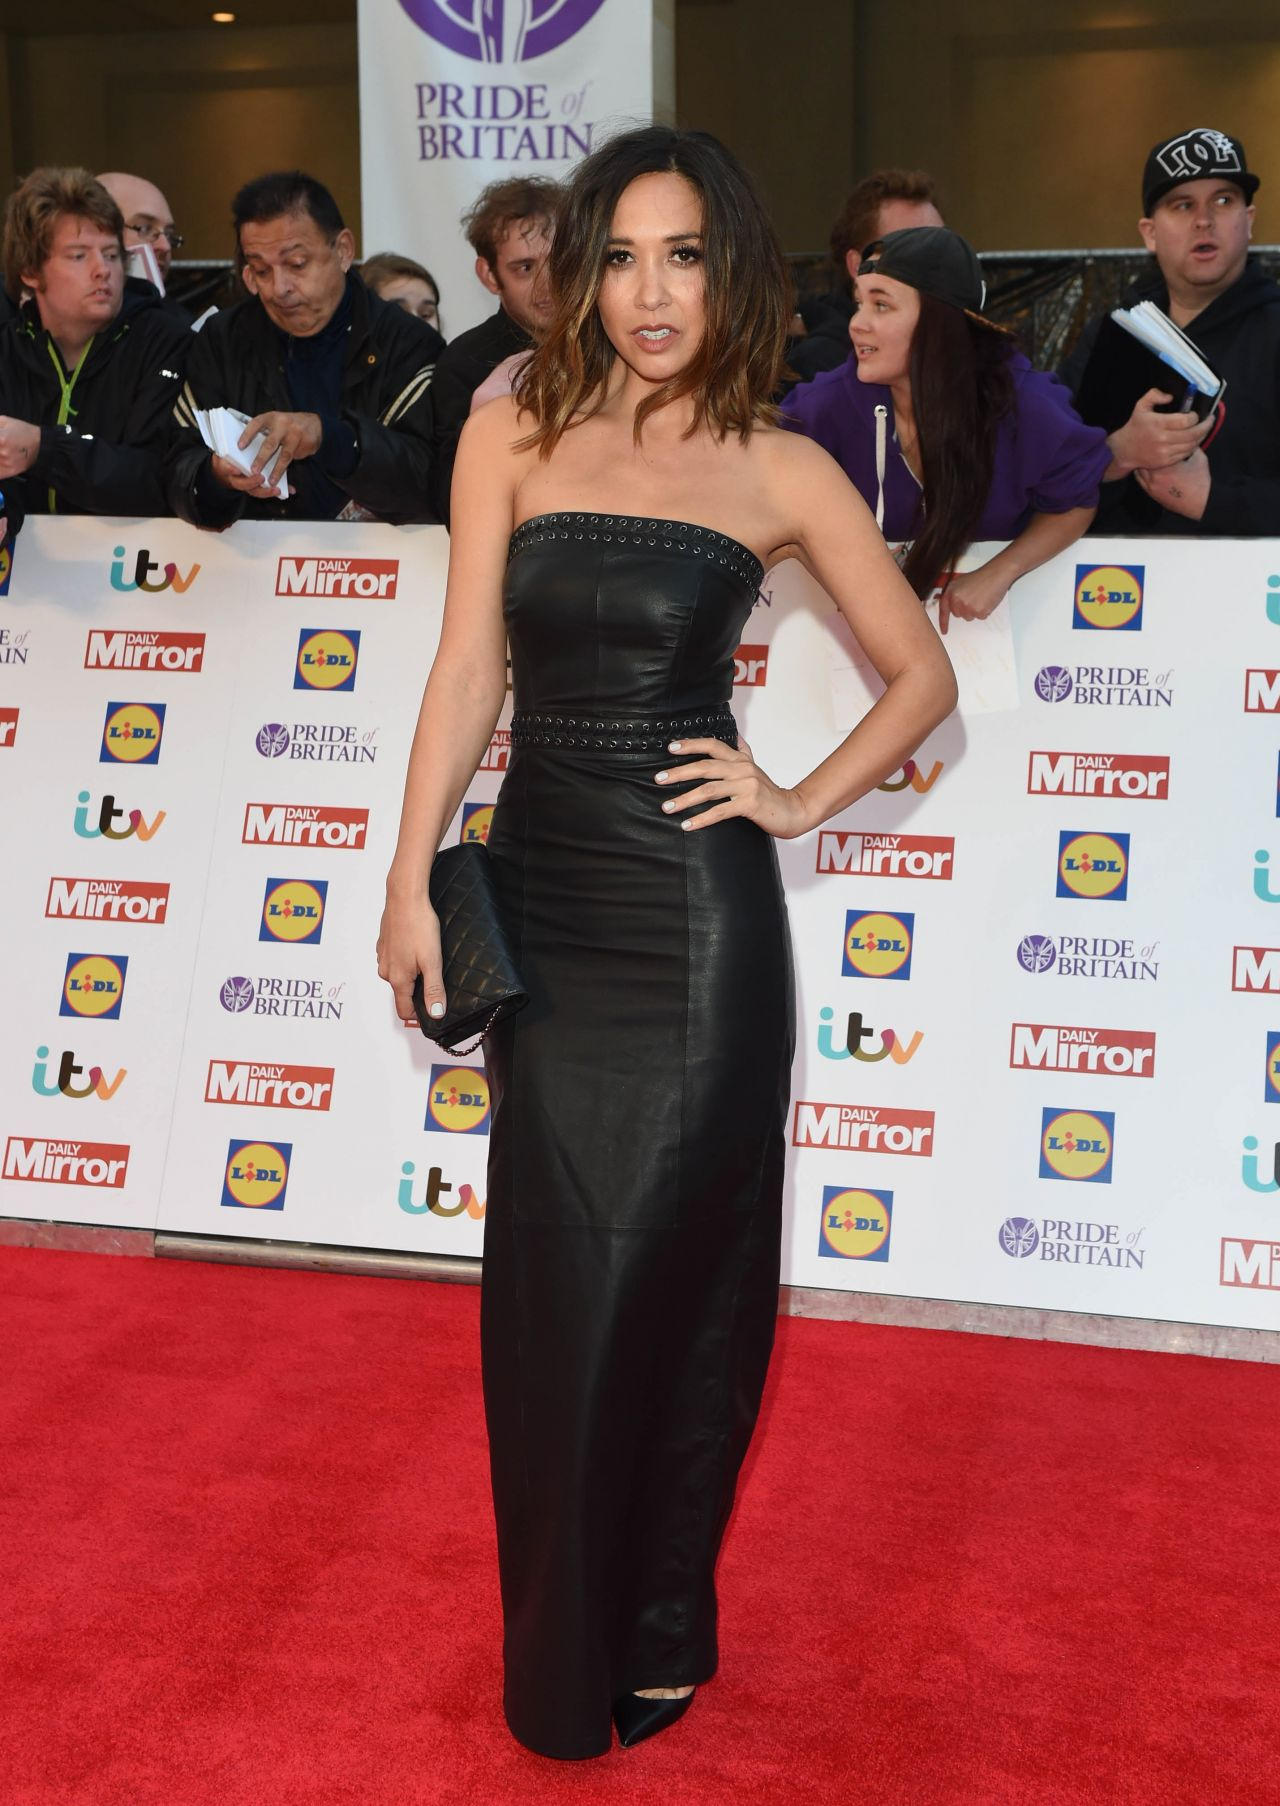 myleene-klass-pride-of-britain-awards-2015-in-london_2